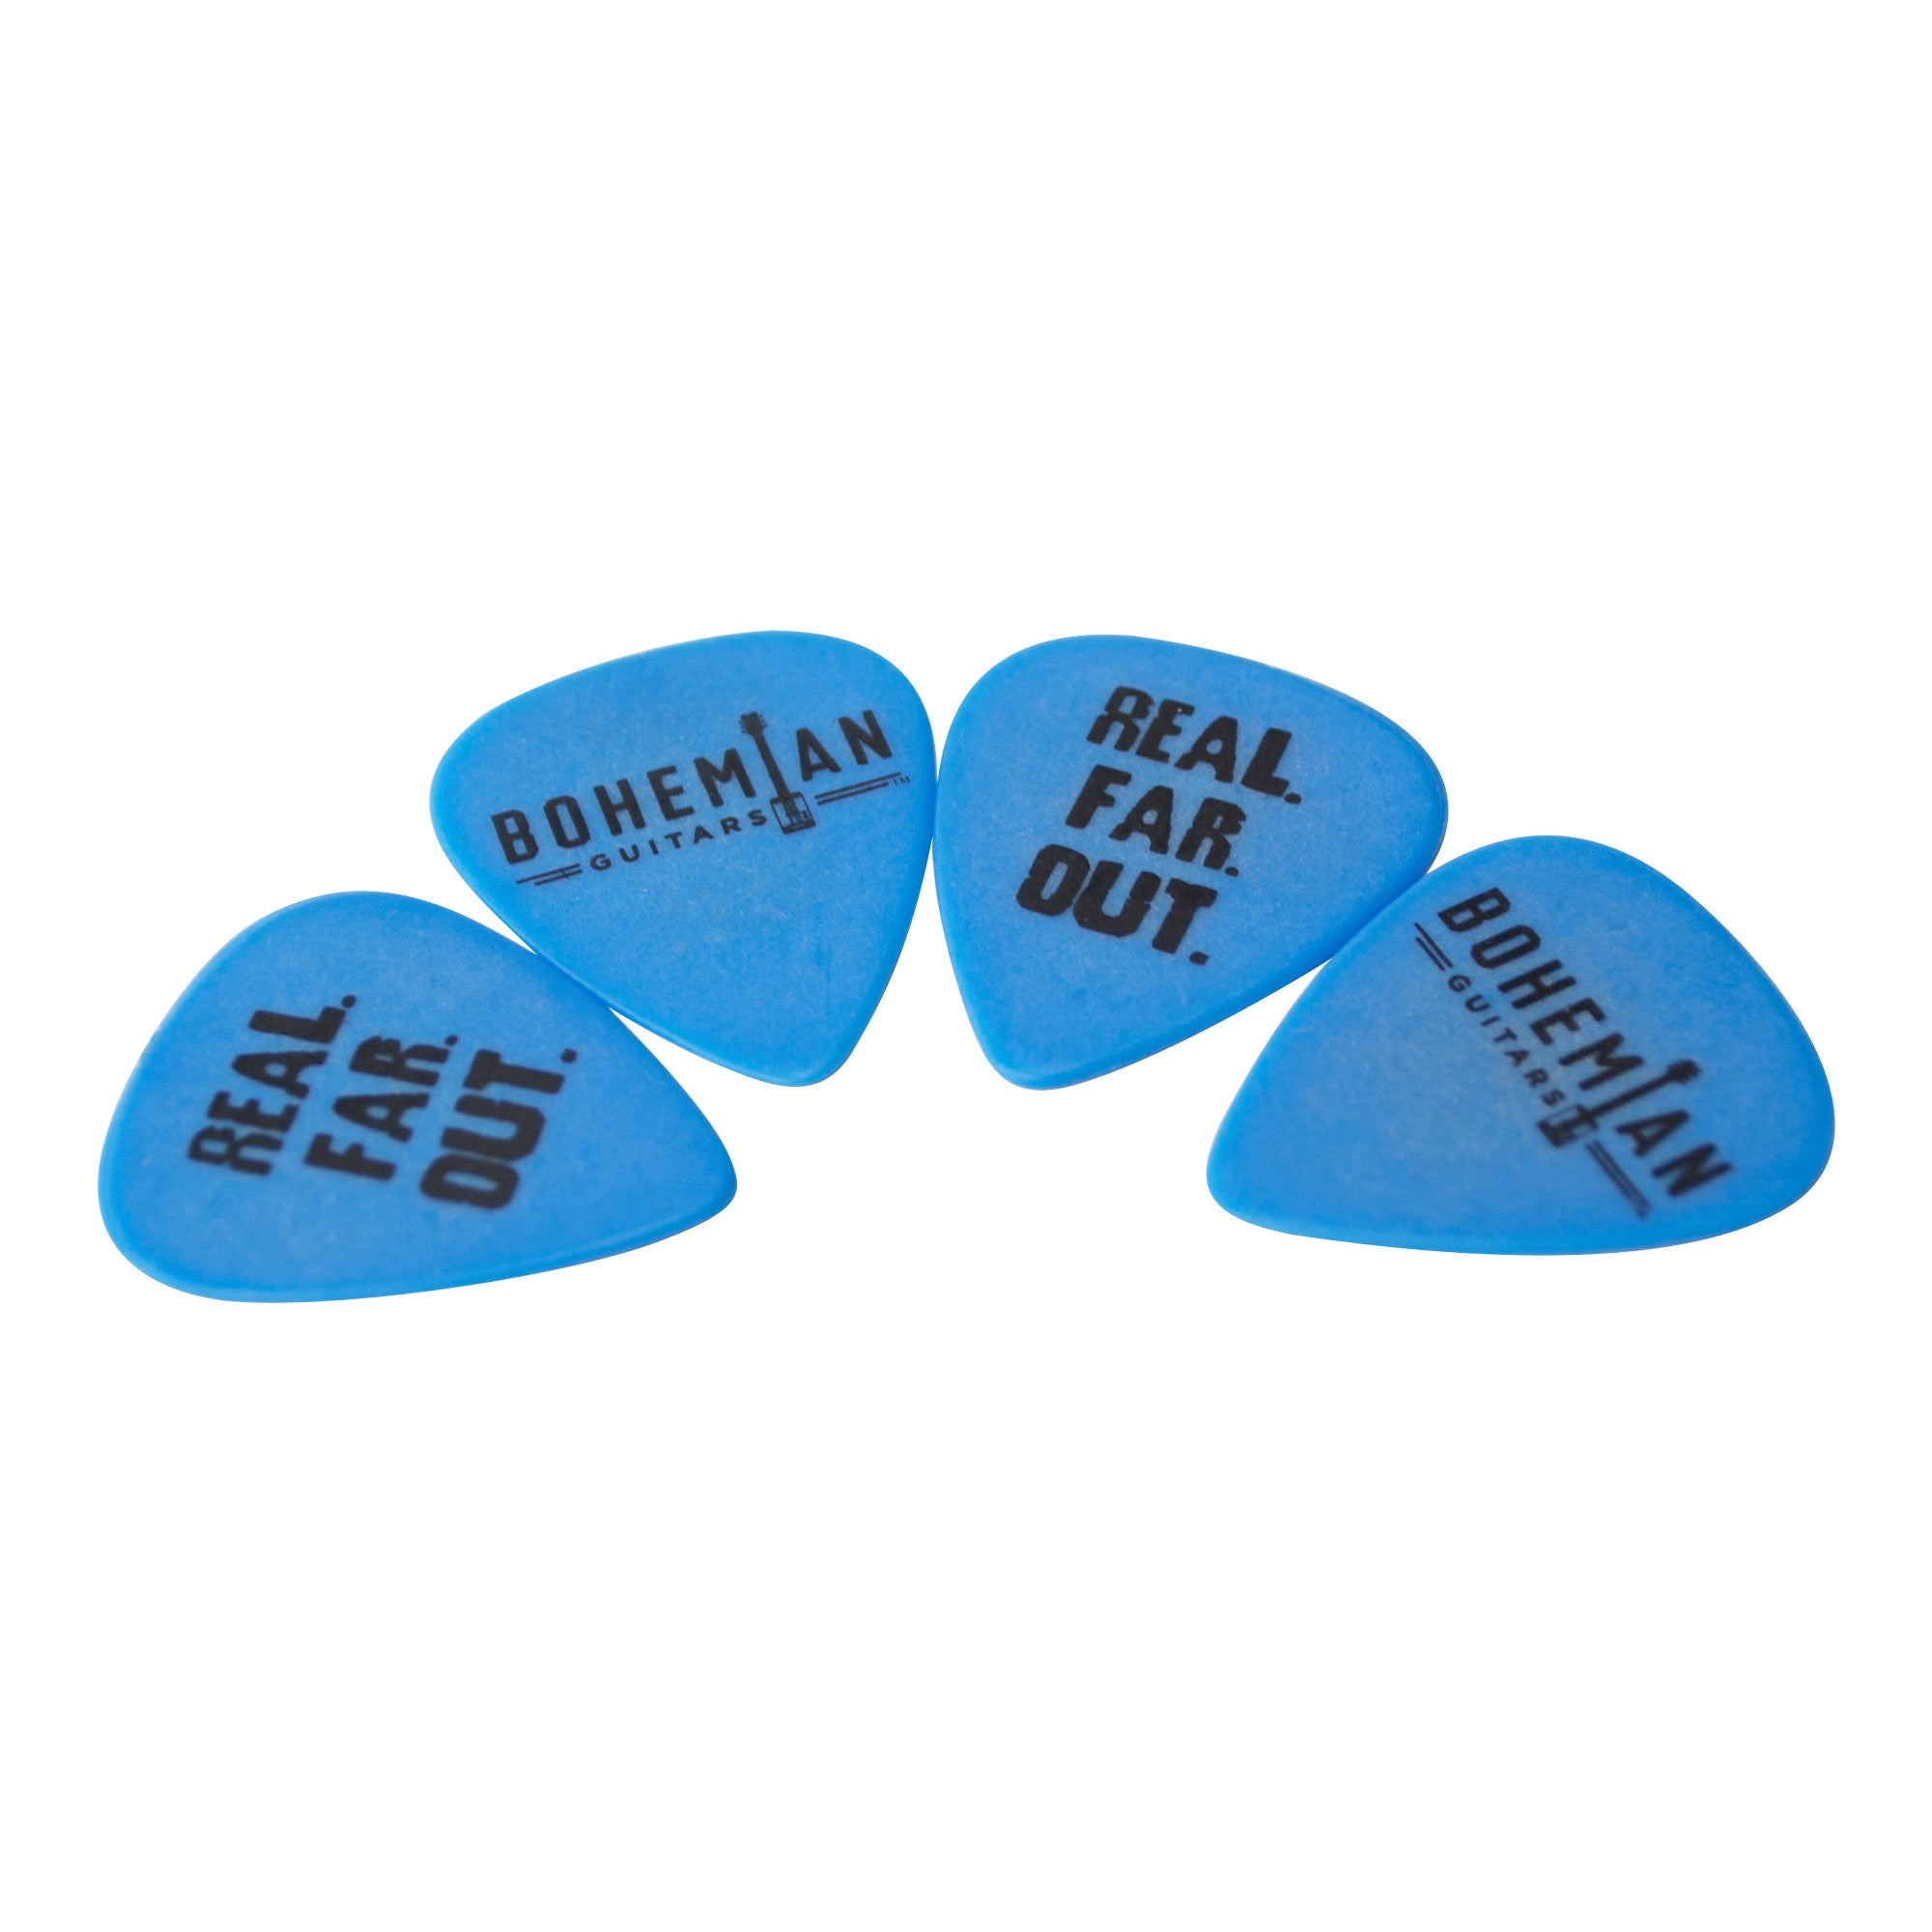 Bohemian Guitars - 50 Pick Packs-accessory-Bohemian Guitars